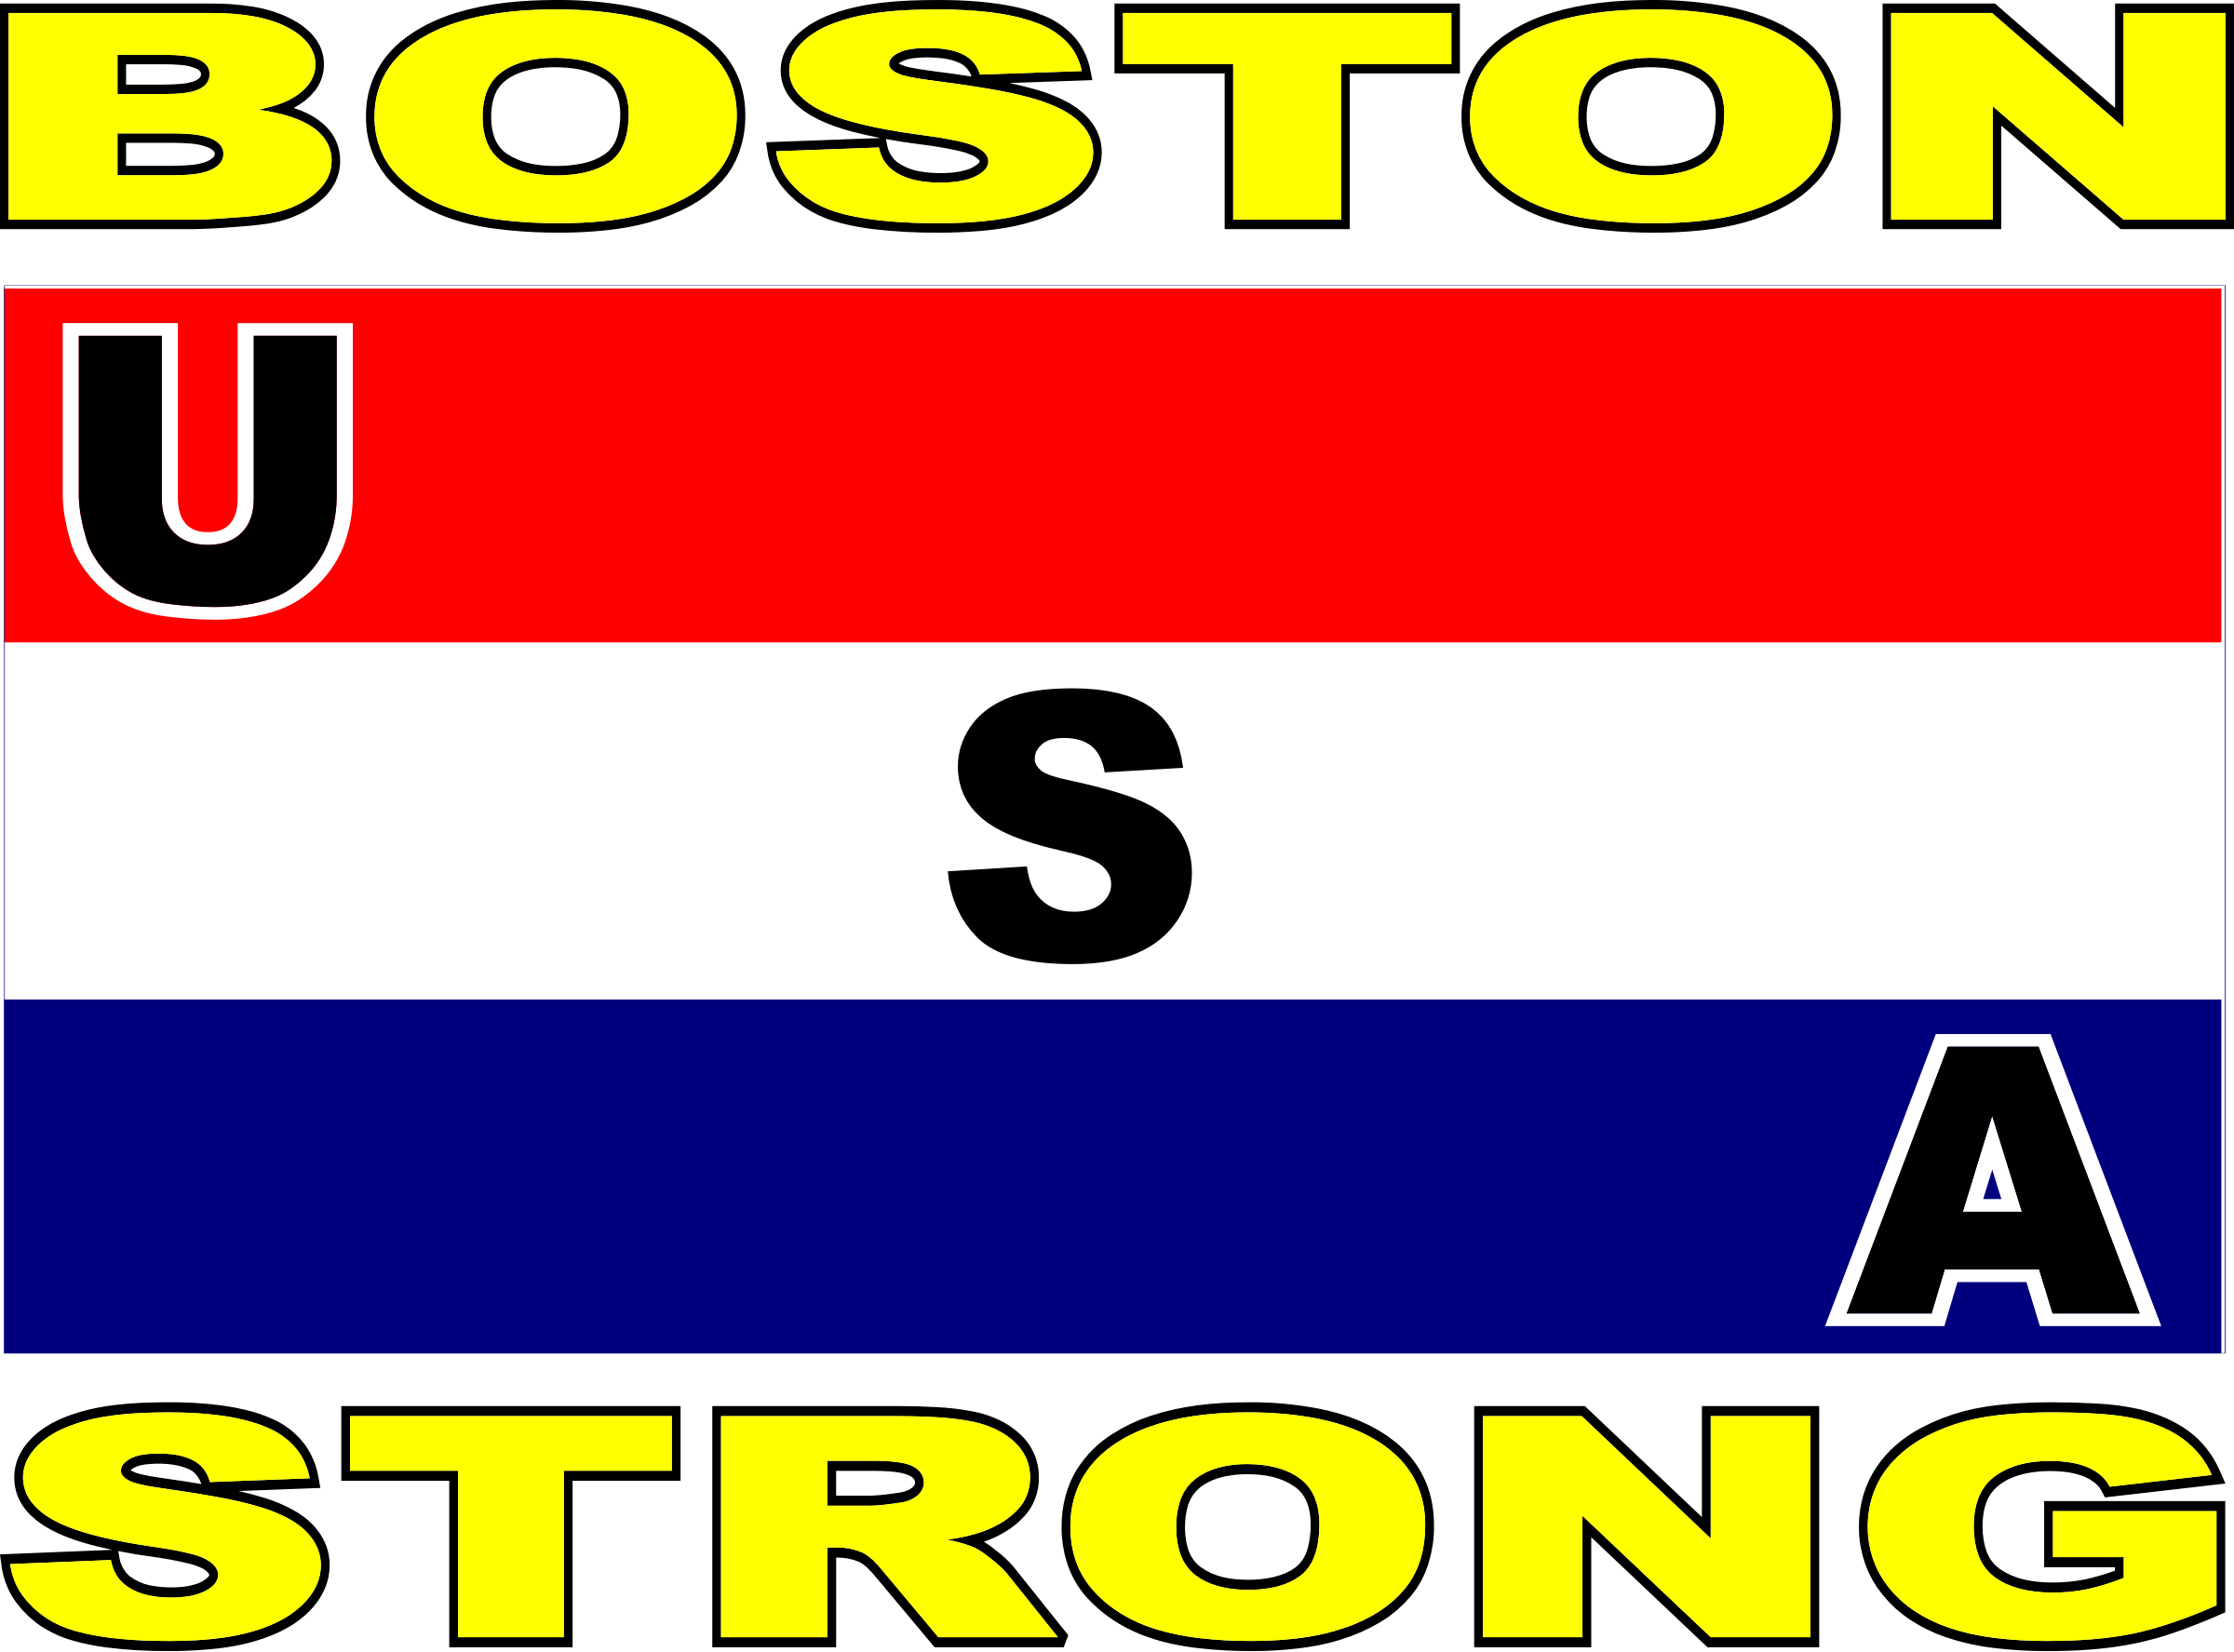 Number 1 clipart striped. Usa stripe flag boston